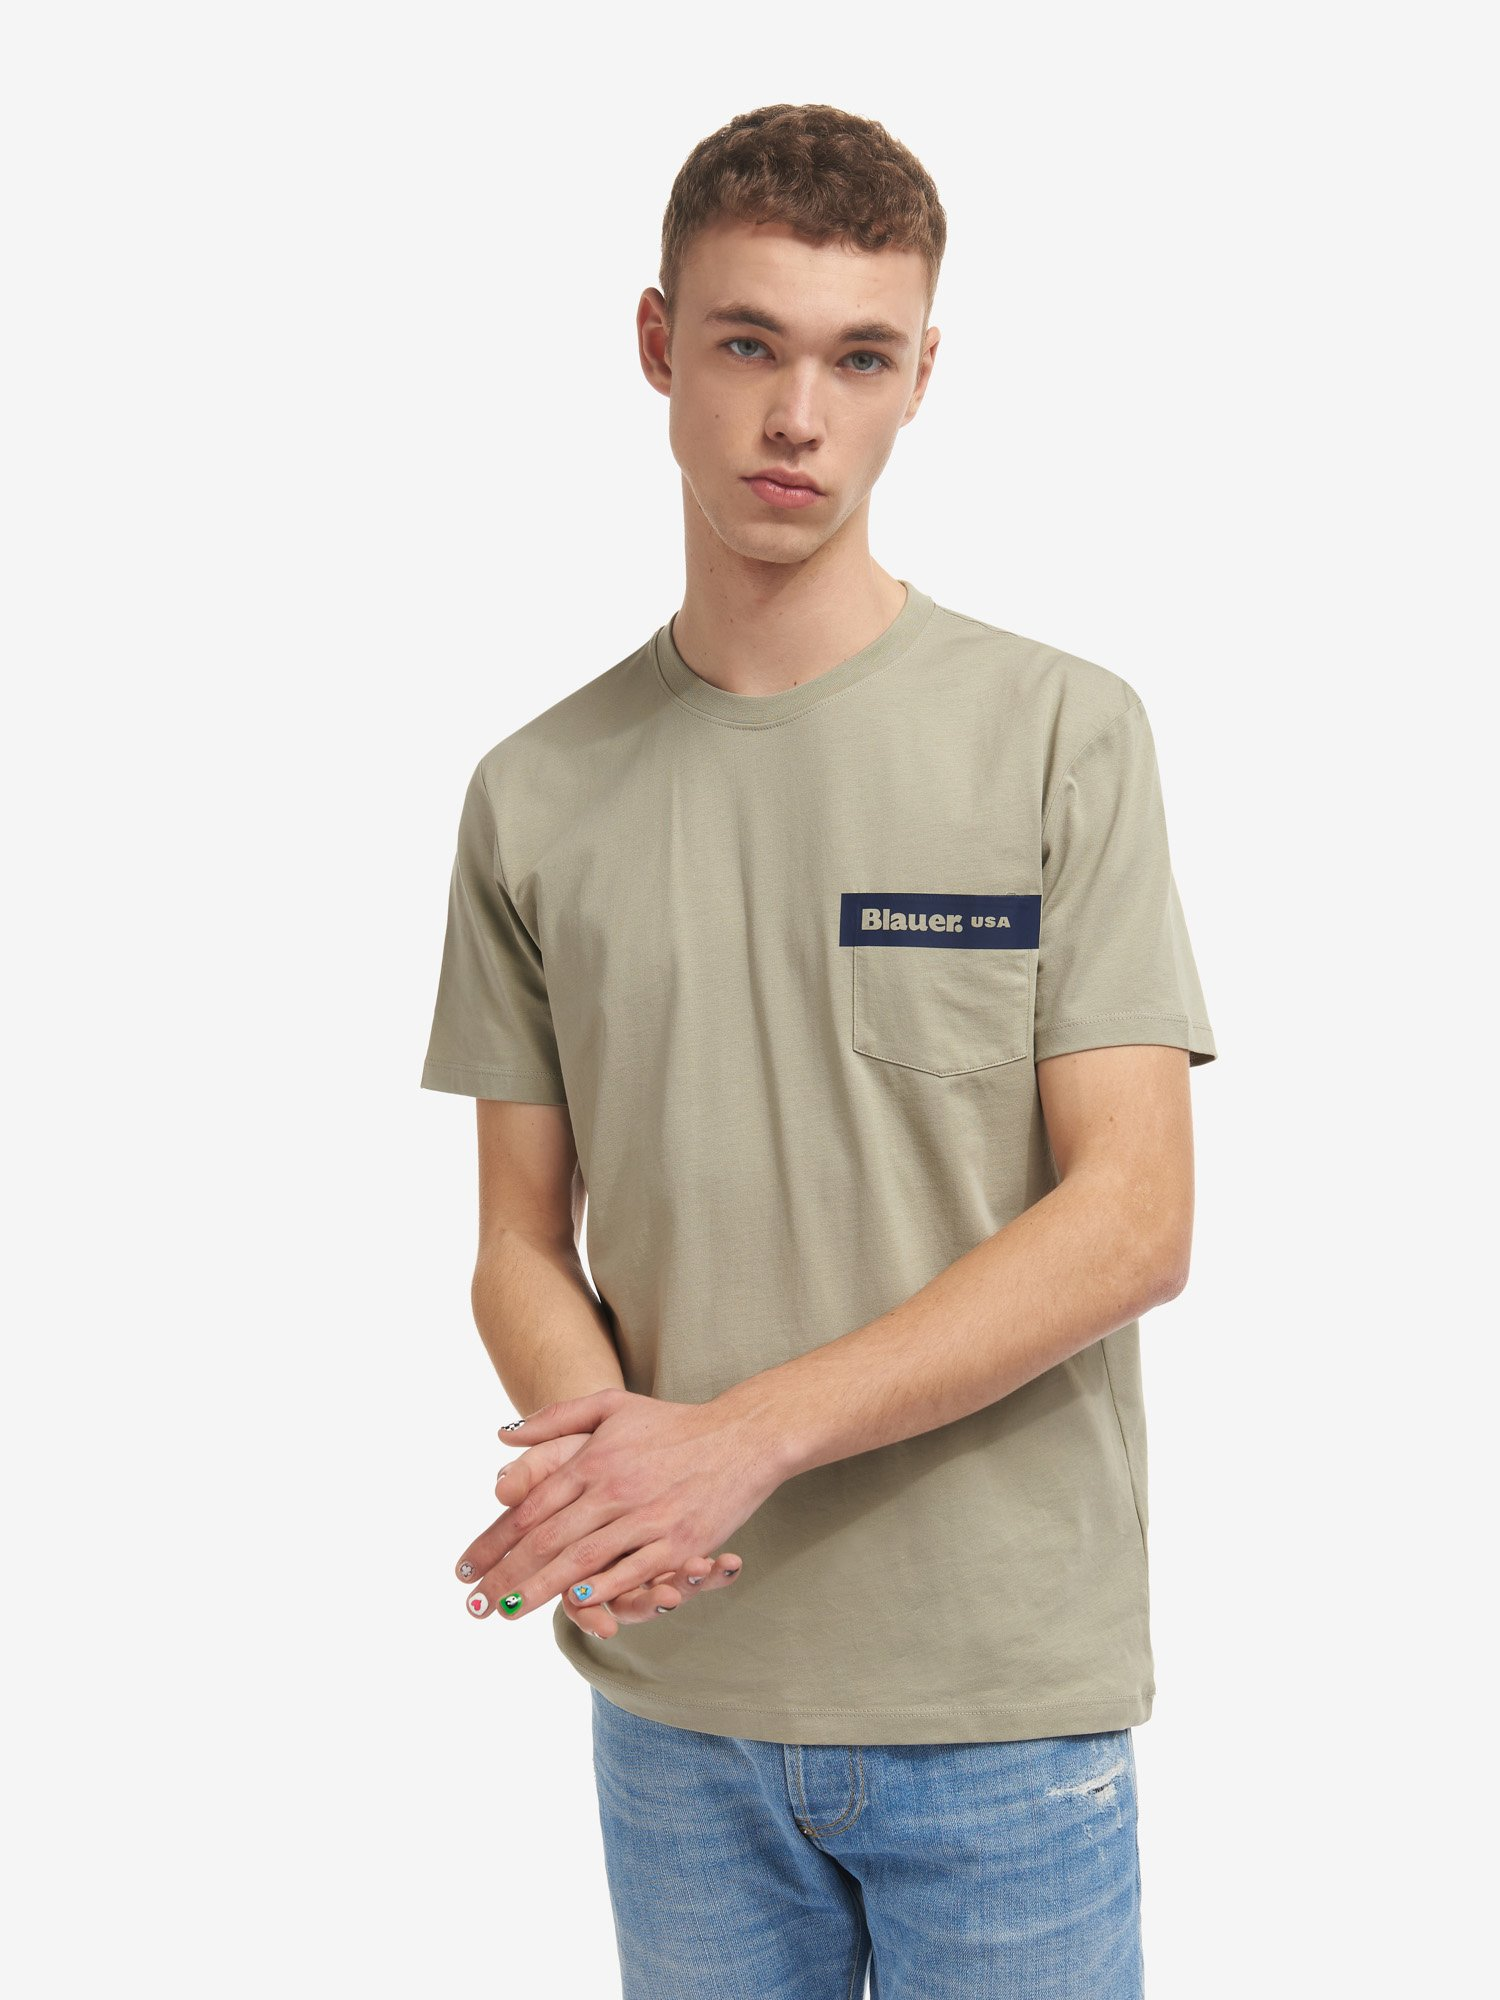 POCKET T-SHIRT - Blauer